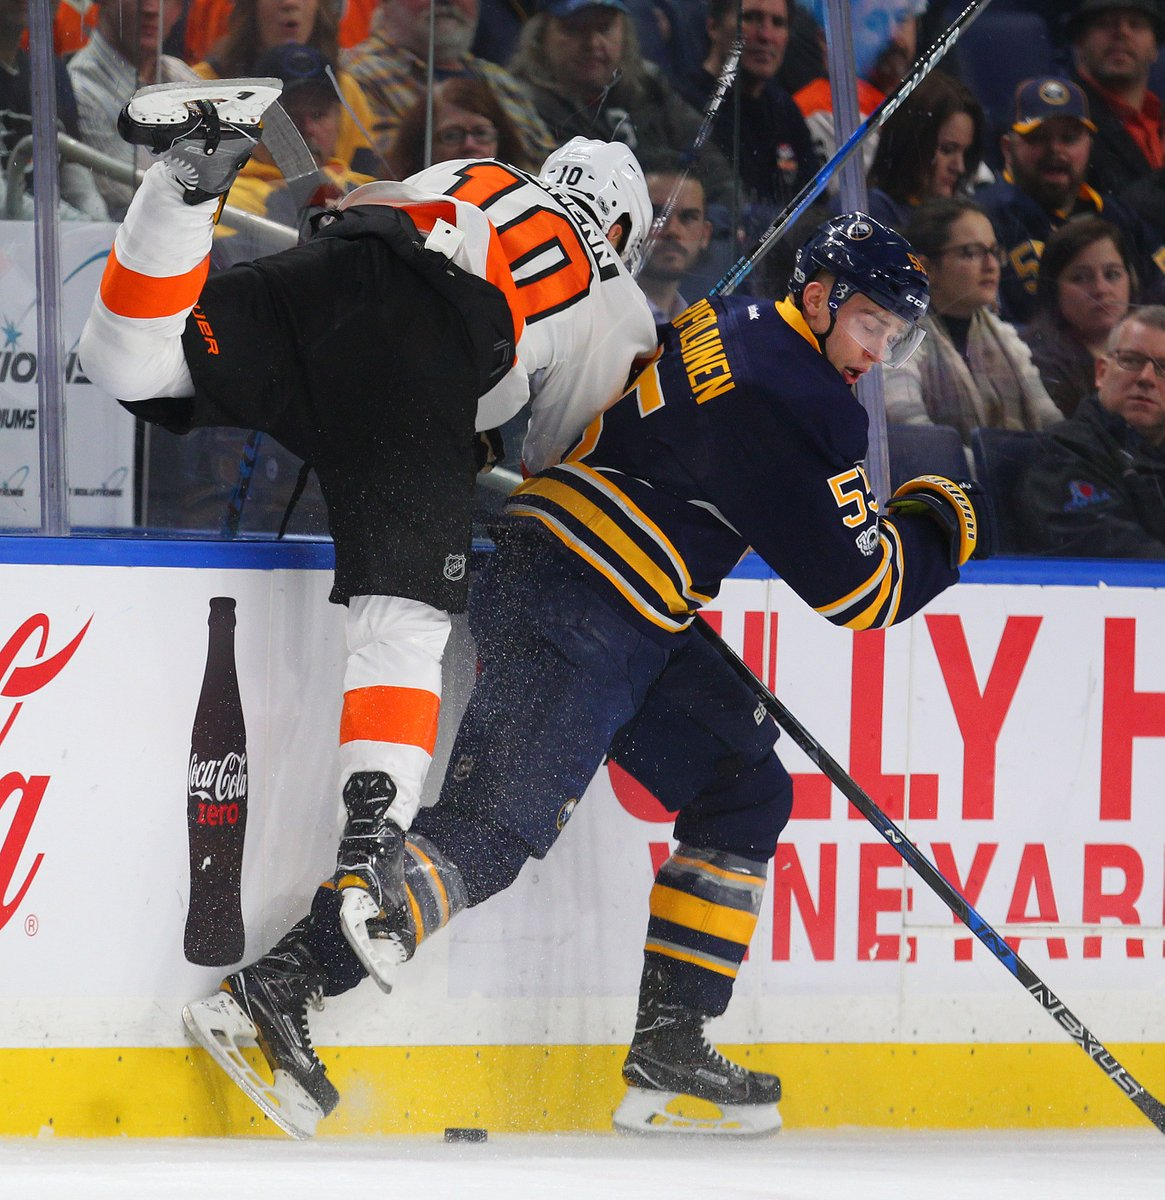 Rasmus Ristolainen battles Brayden Schenn along the boards (Mark Mulville/Buffalo News).